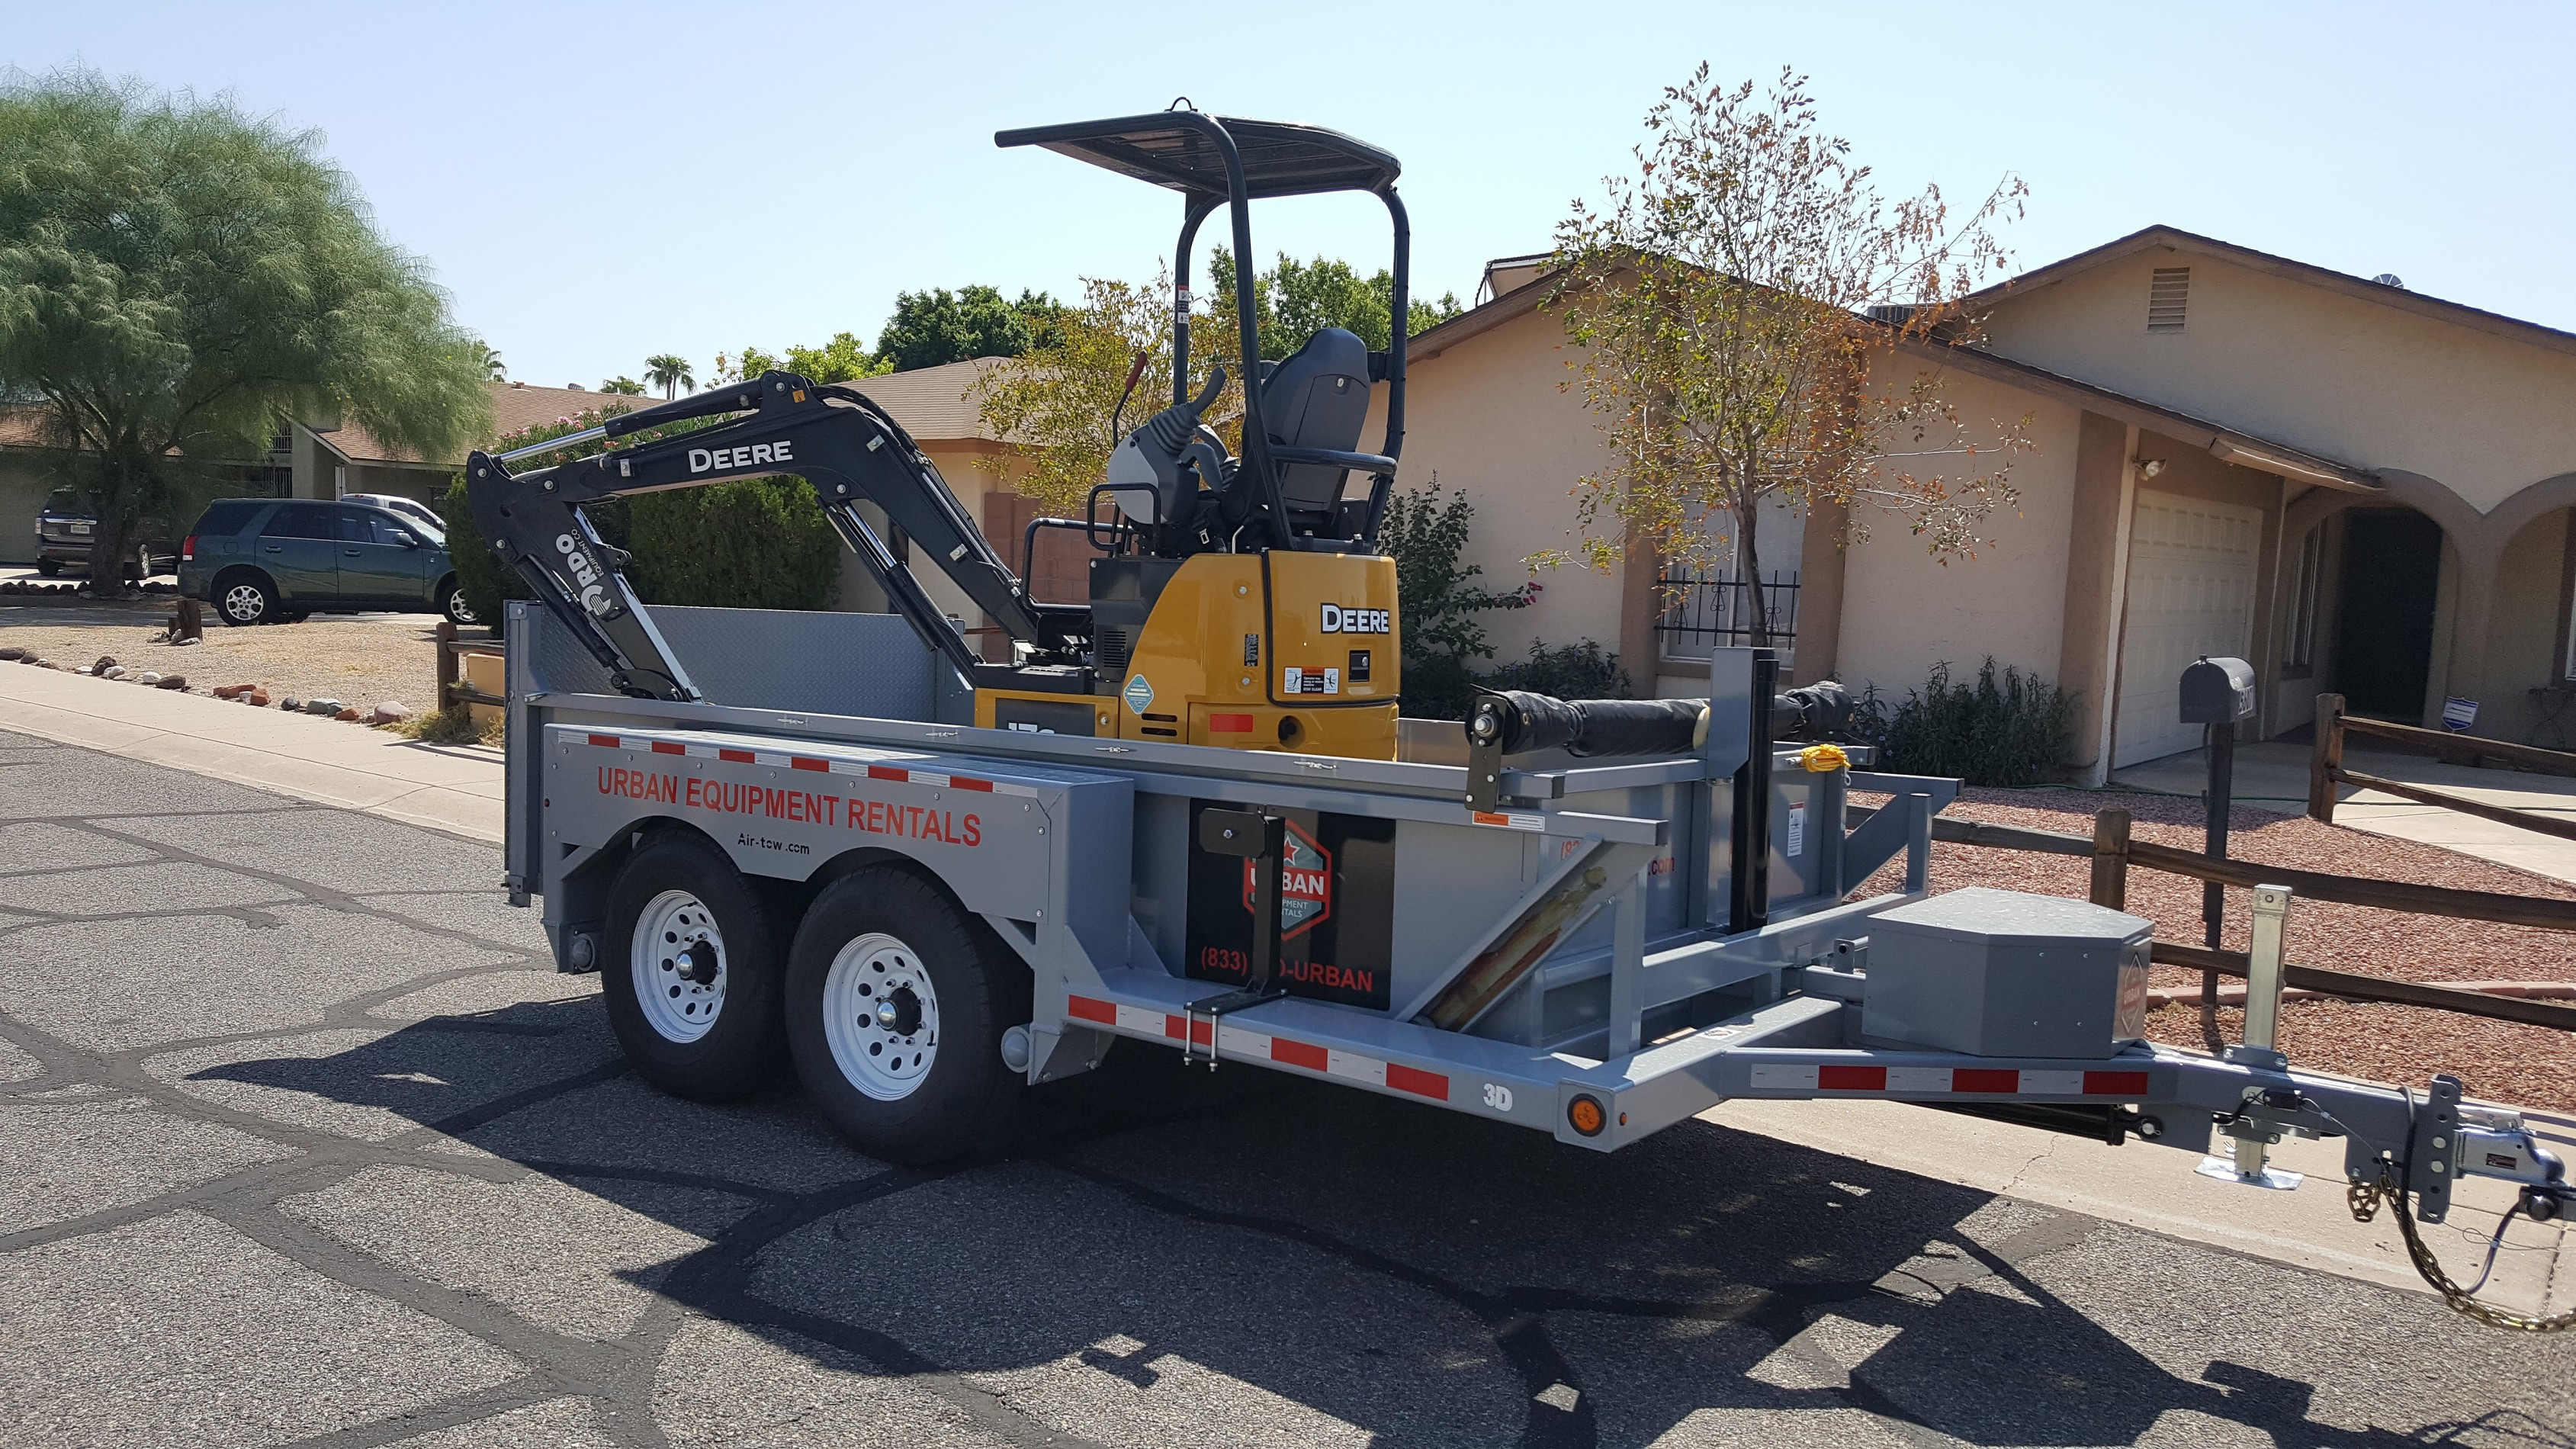 Urban Equipment Rentals Airtow 3D Trailer with JD17G Excavator